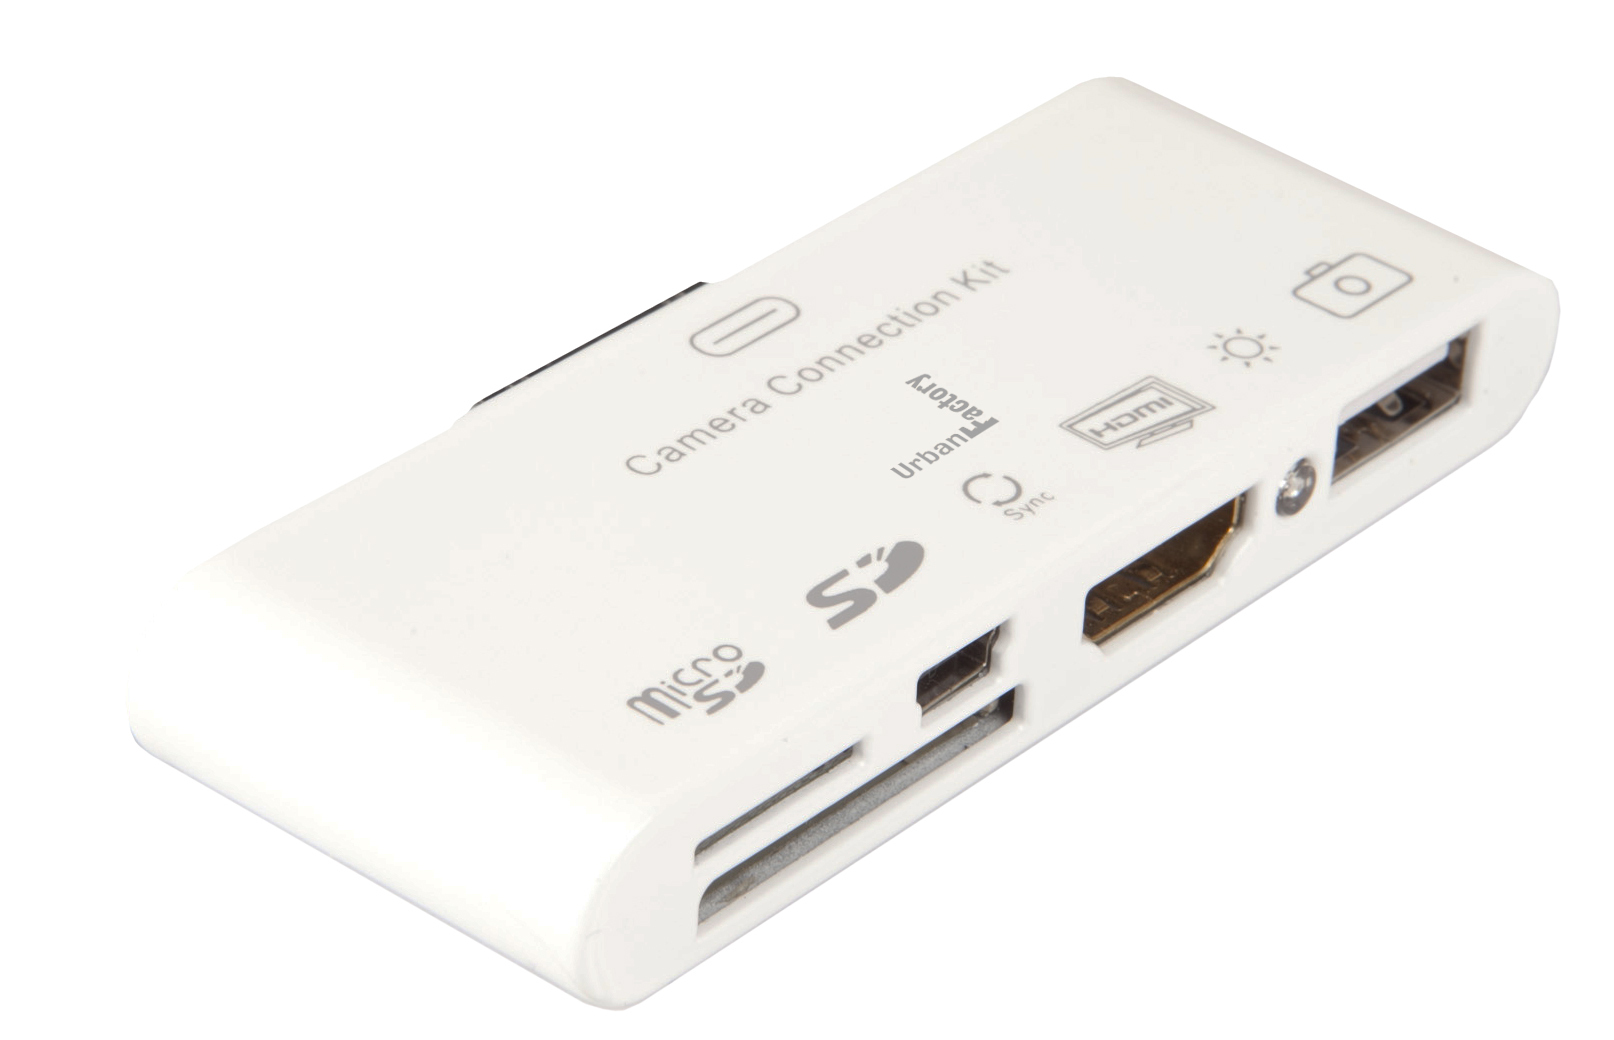 Urban Factory ICR05UF HDMI,USB 2.0 interface cards/adapter